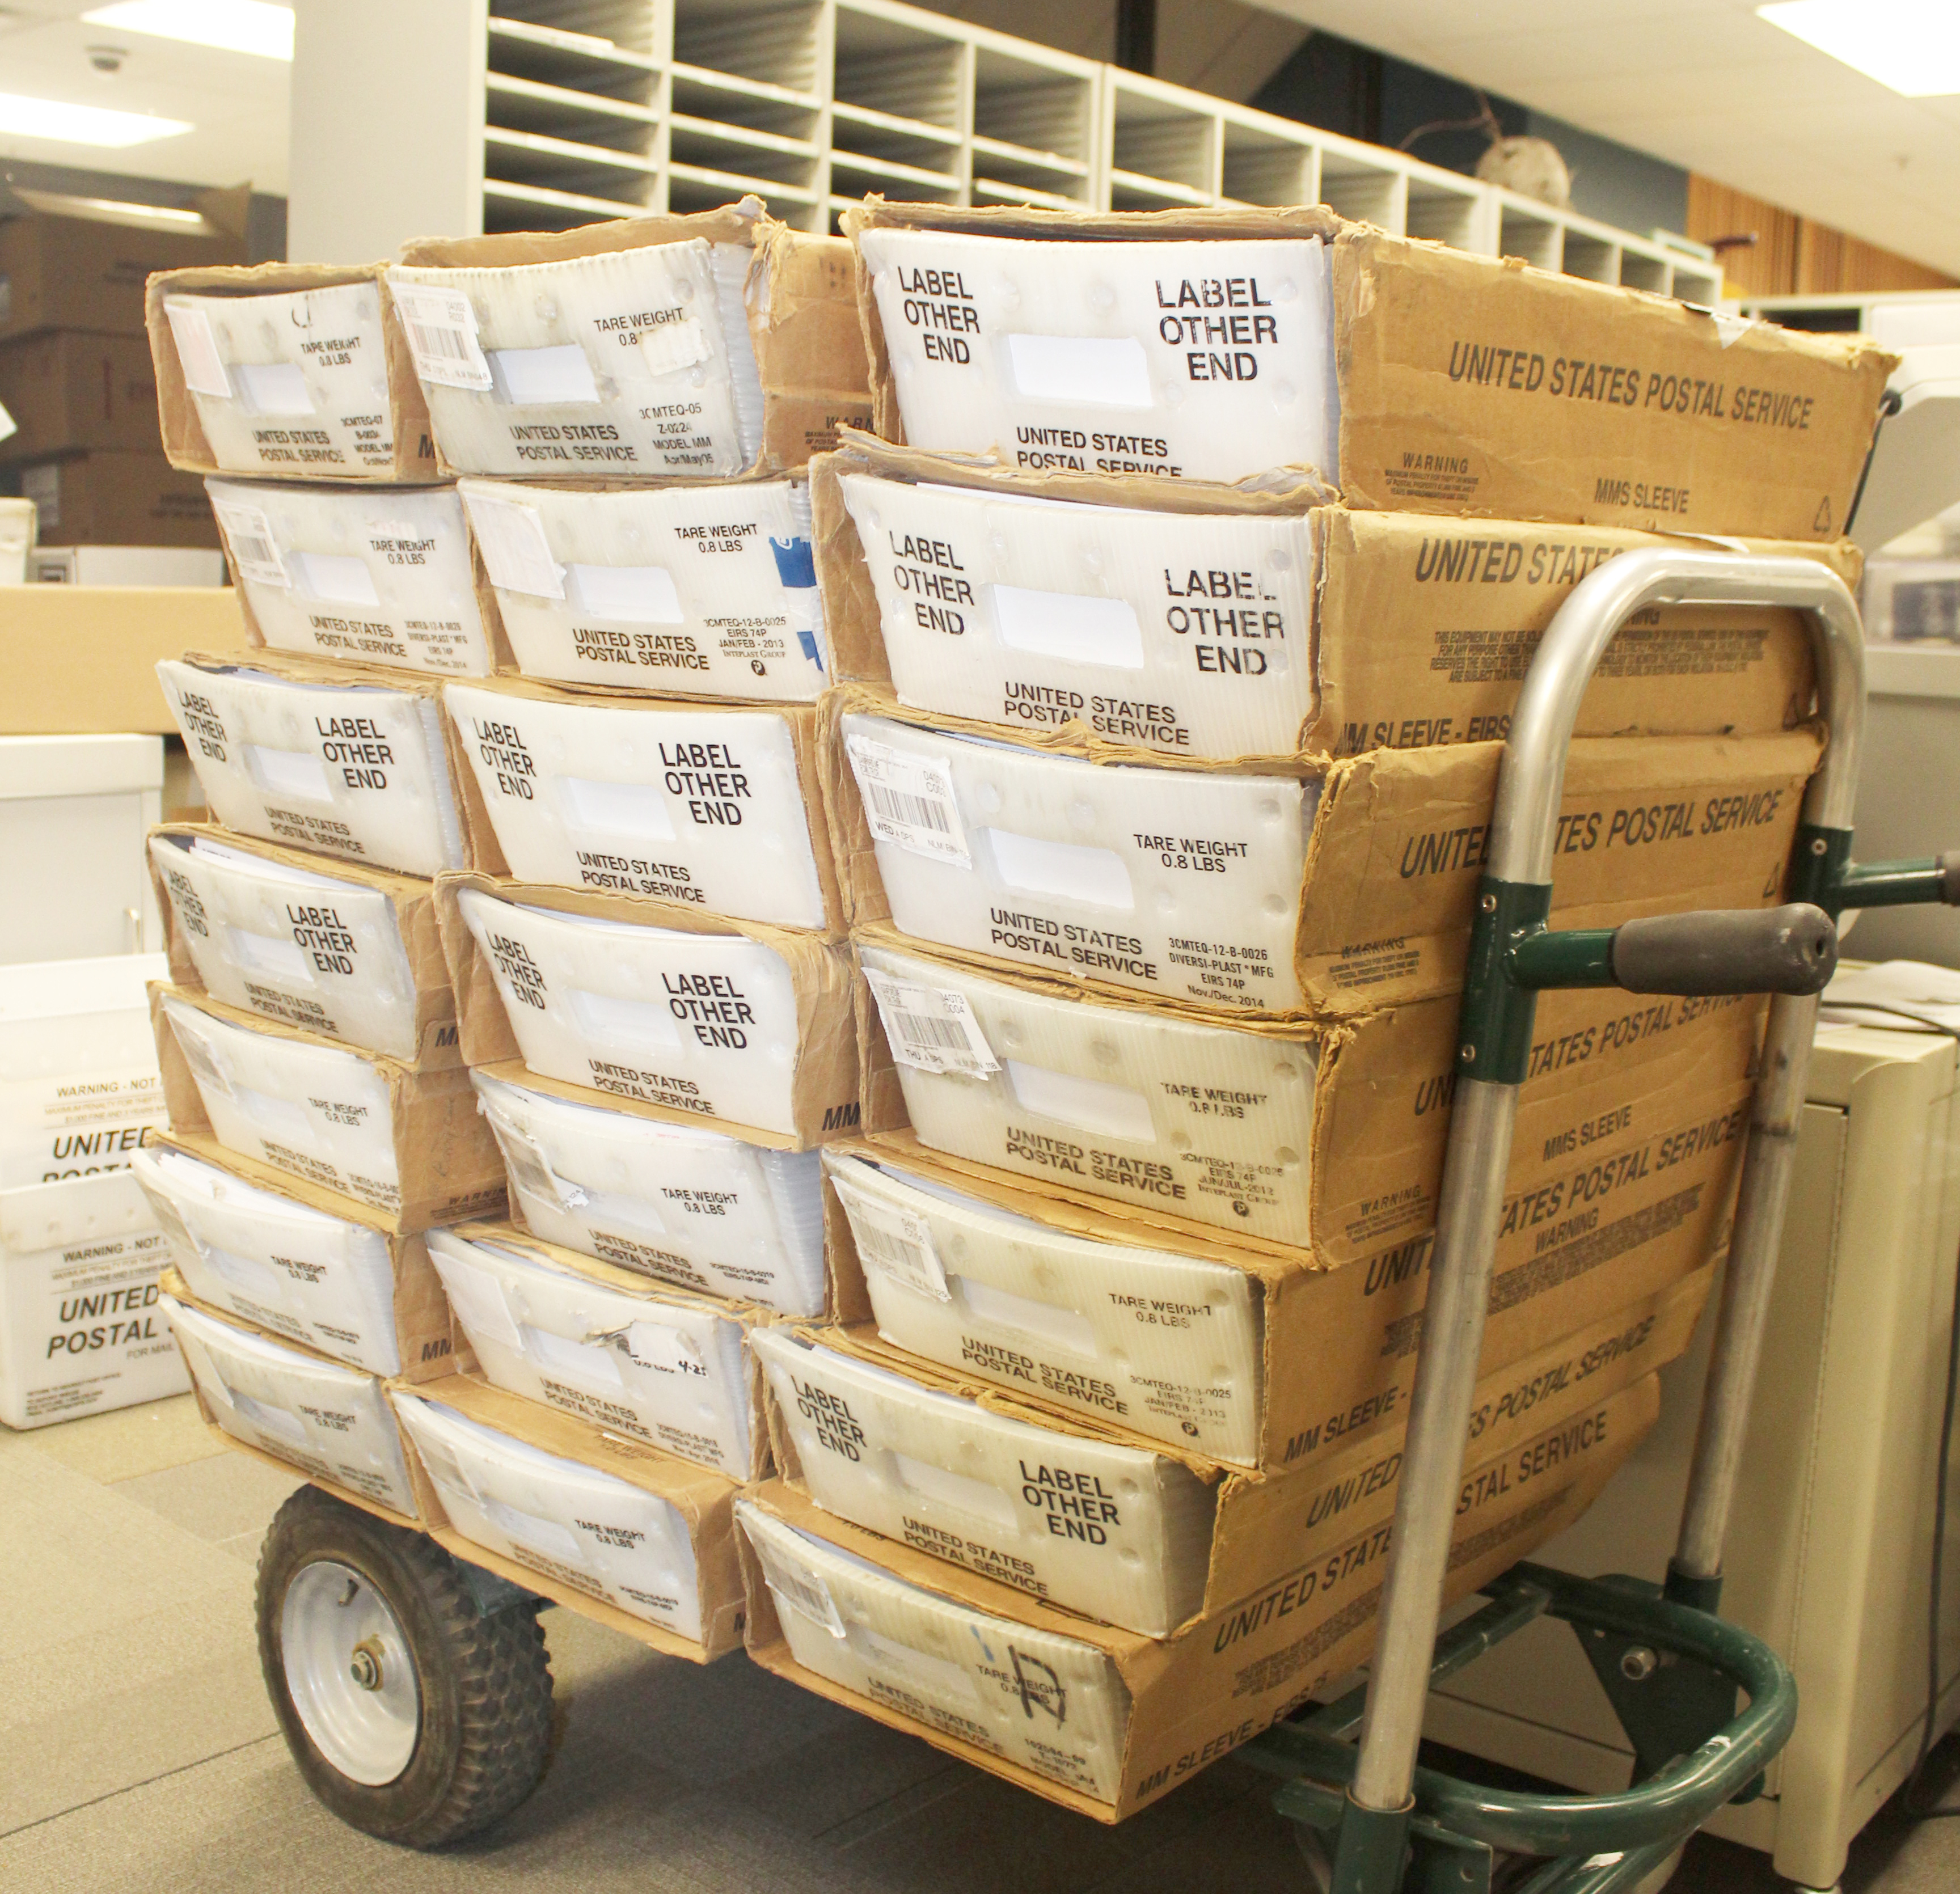 mailcart full of boxes of mail